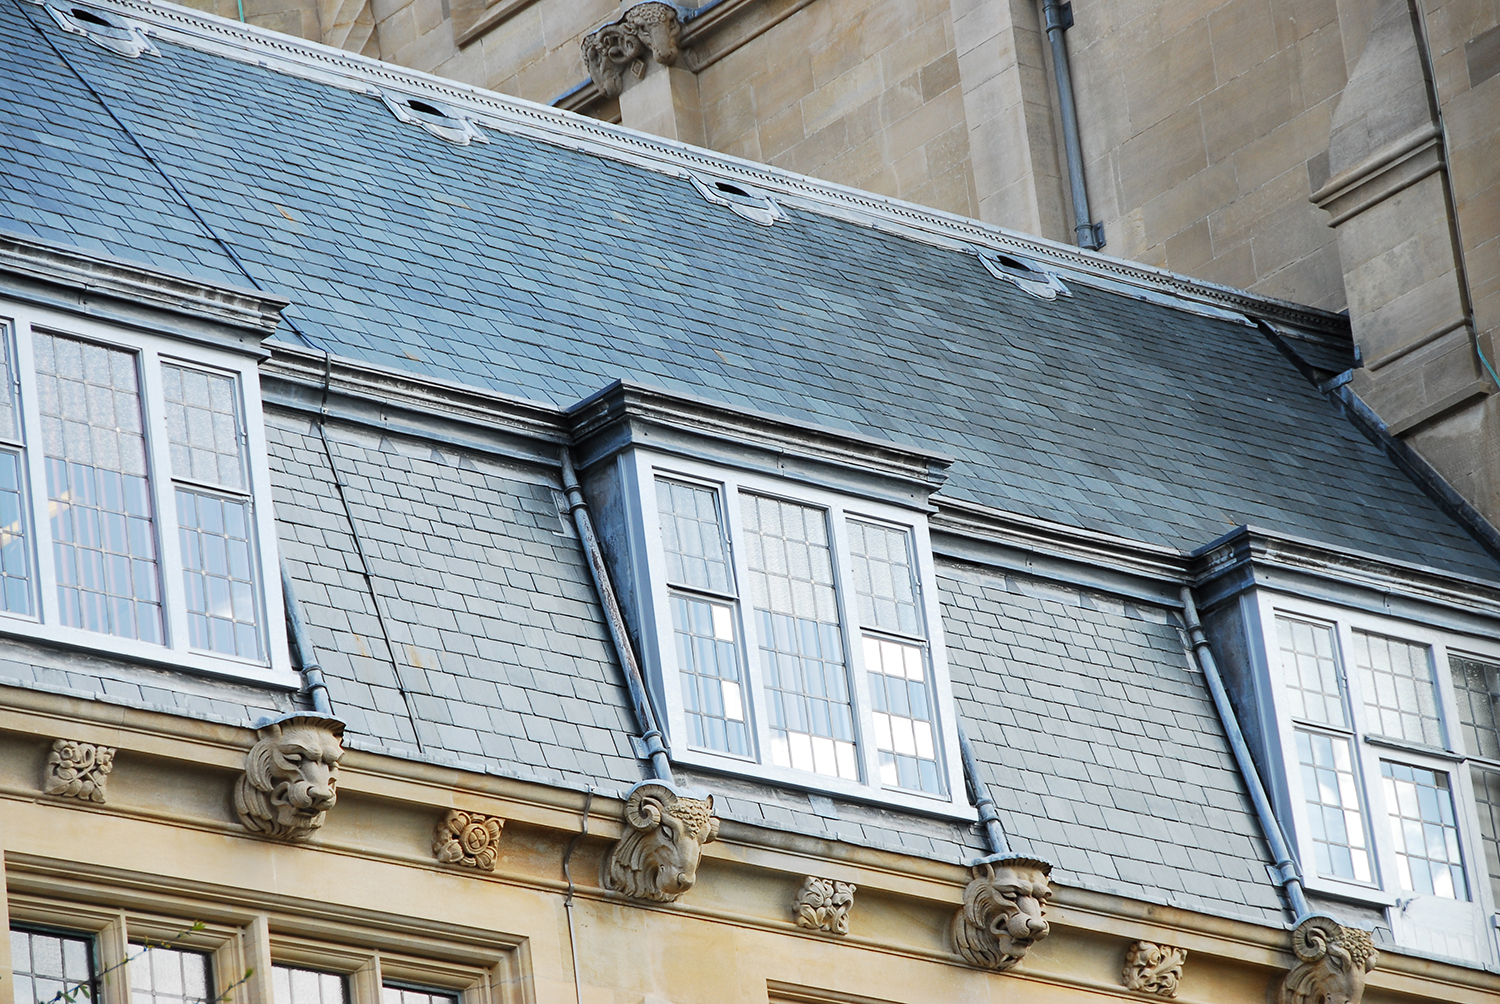 Grade II listed building at the University of Bristol benefits from SSQ Riverstone roofing slate